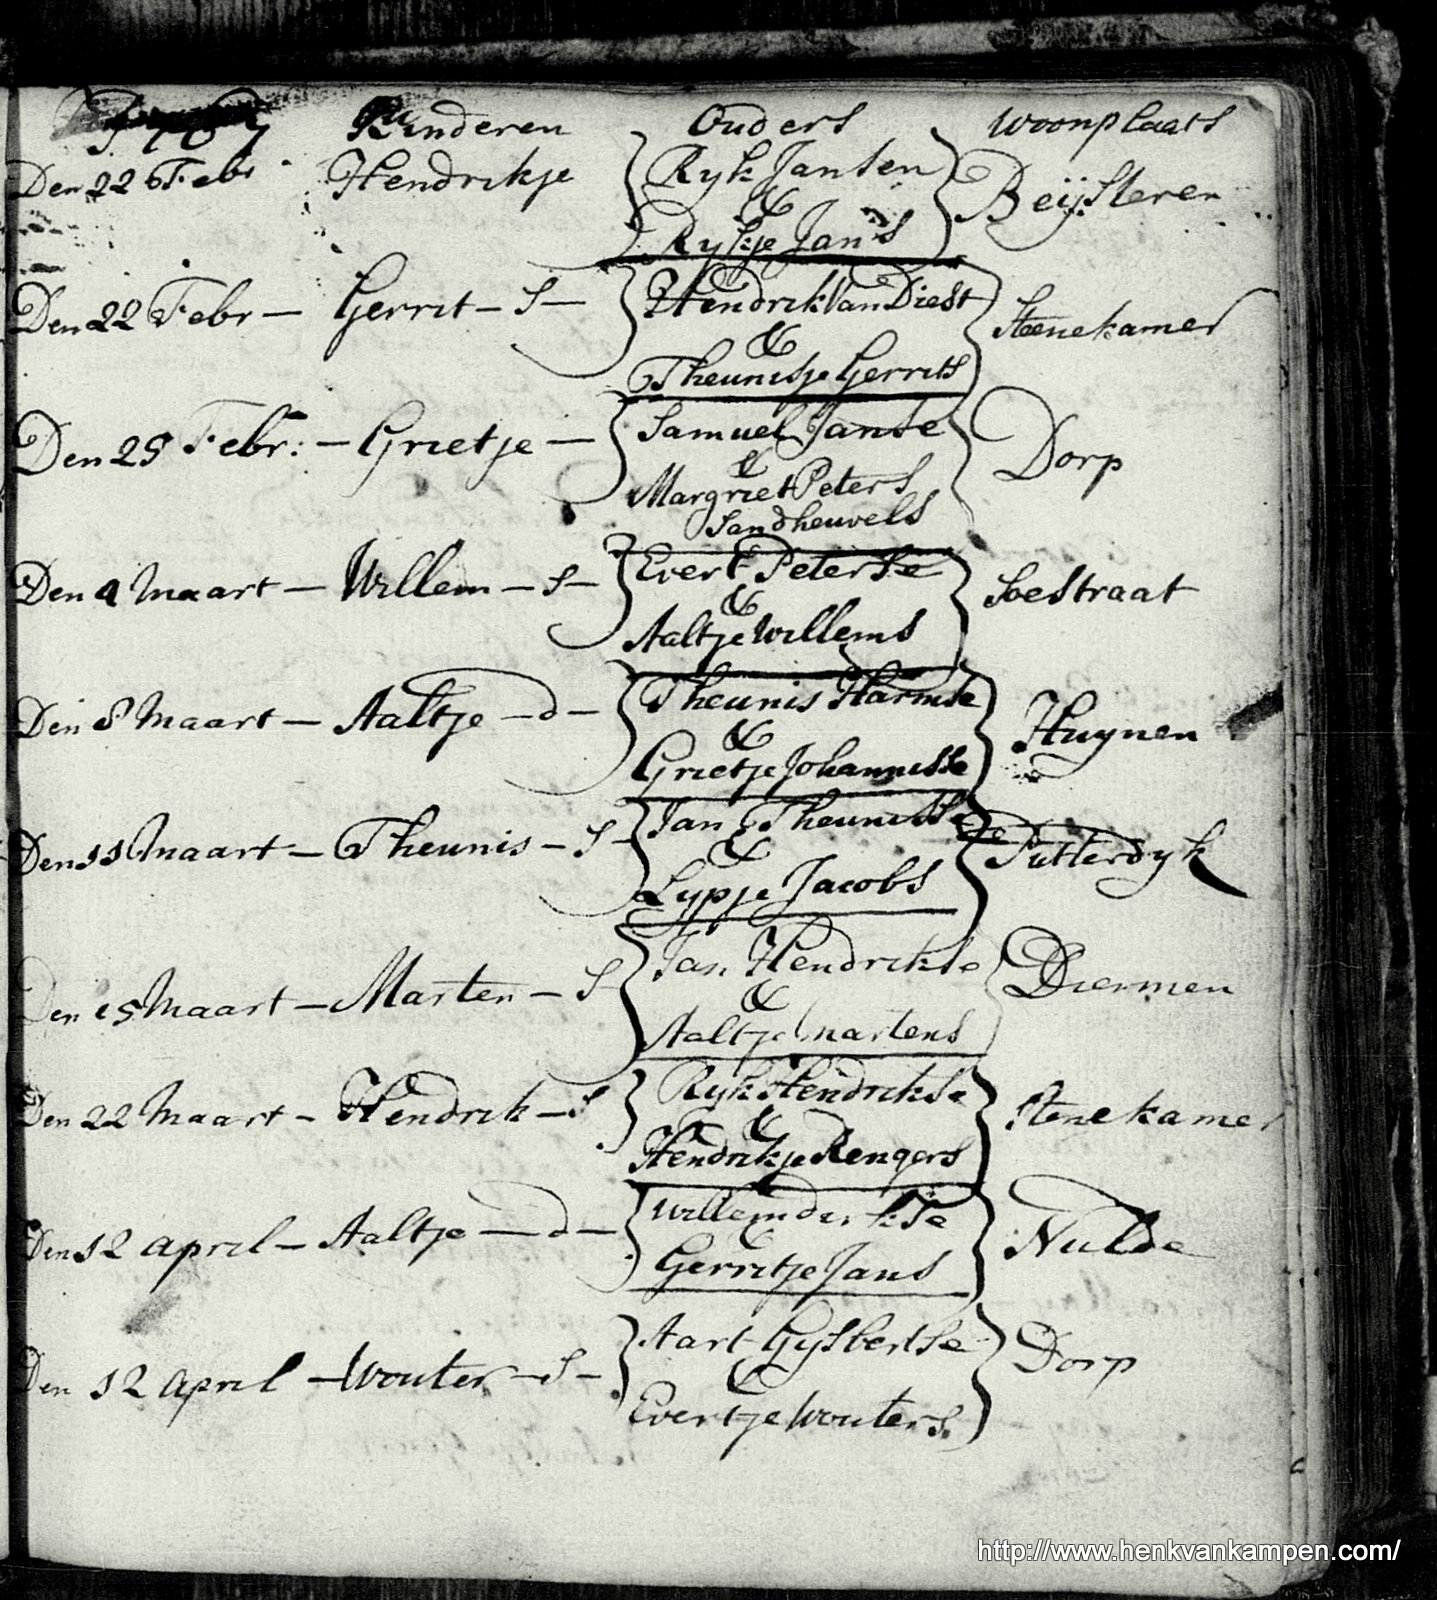 Putten baptism book, with the baptism of Aaltje Teunisse van 't Land